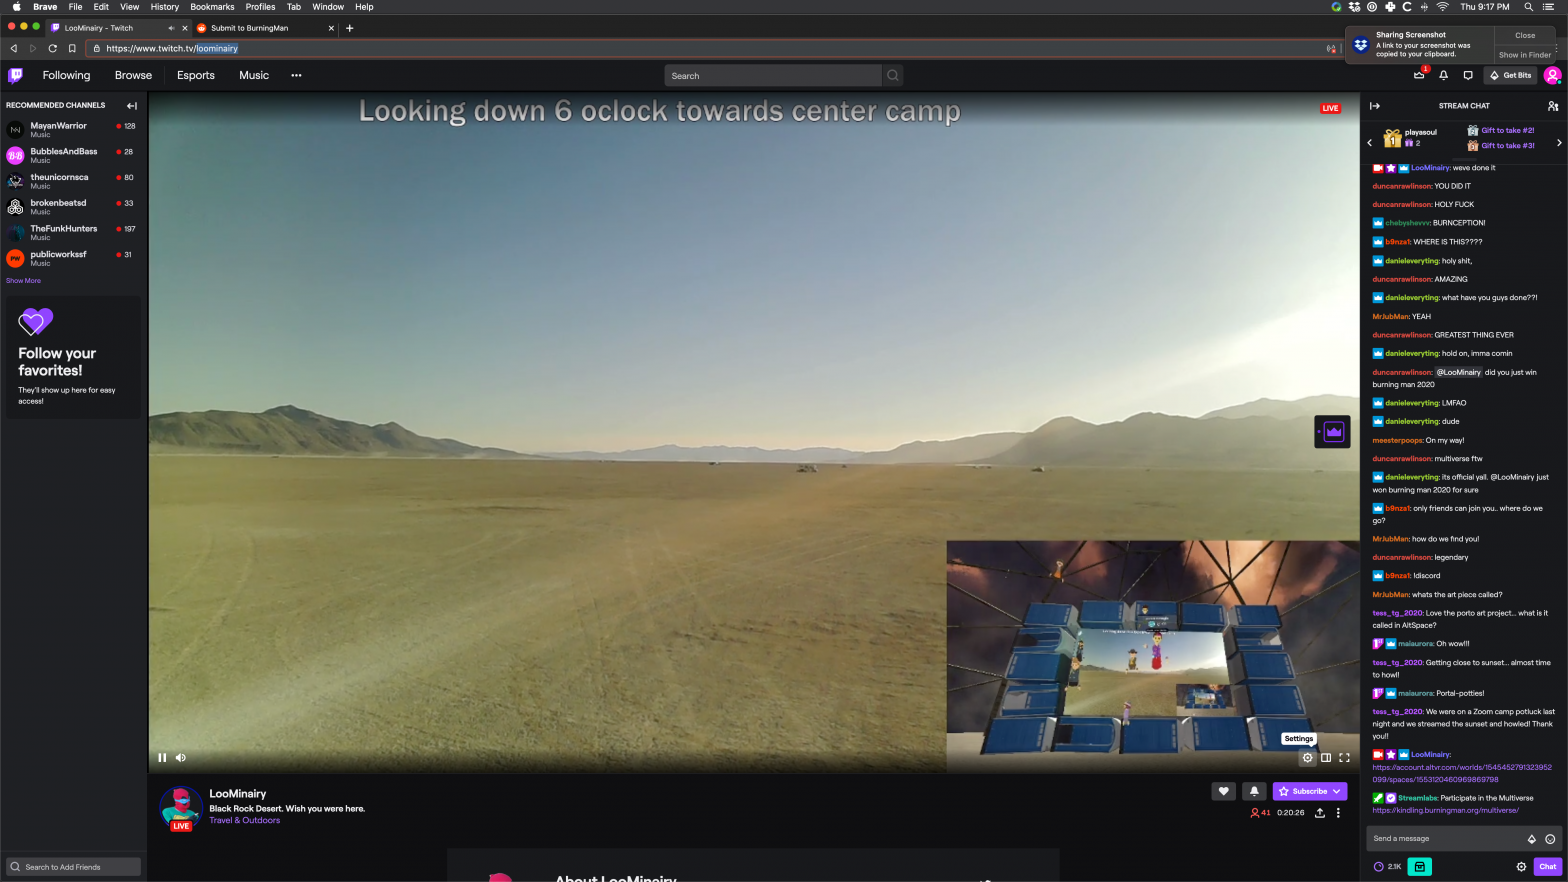 Burnception Live Streaming From The Playa in BRCvr